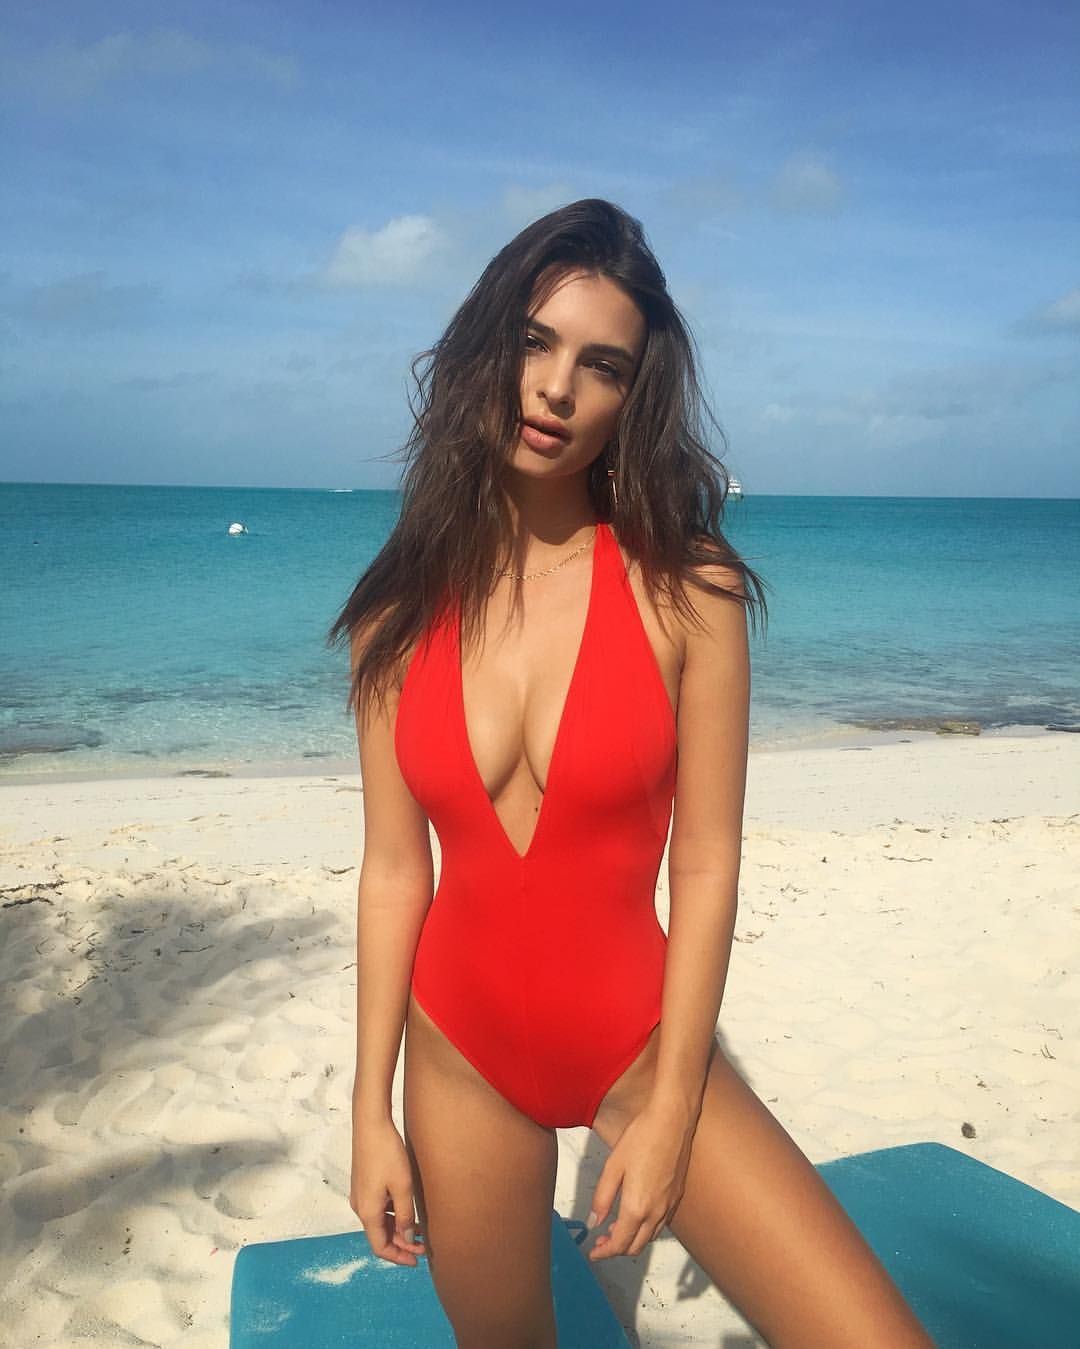 ec8486834f See this Instagram photo by  emrata • 581.3k likes Hot Lingerie